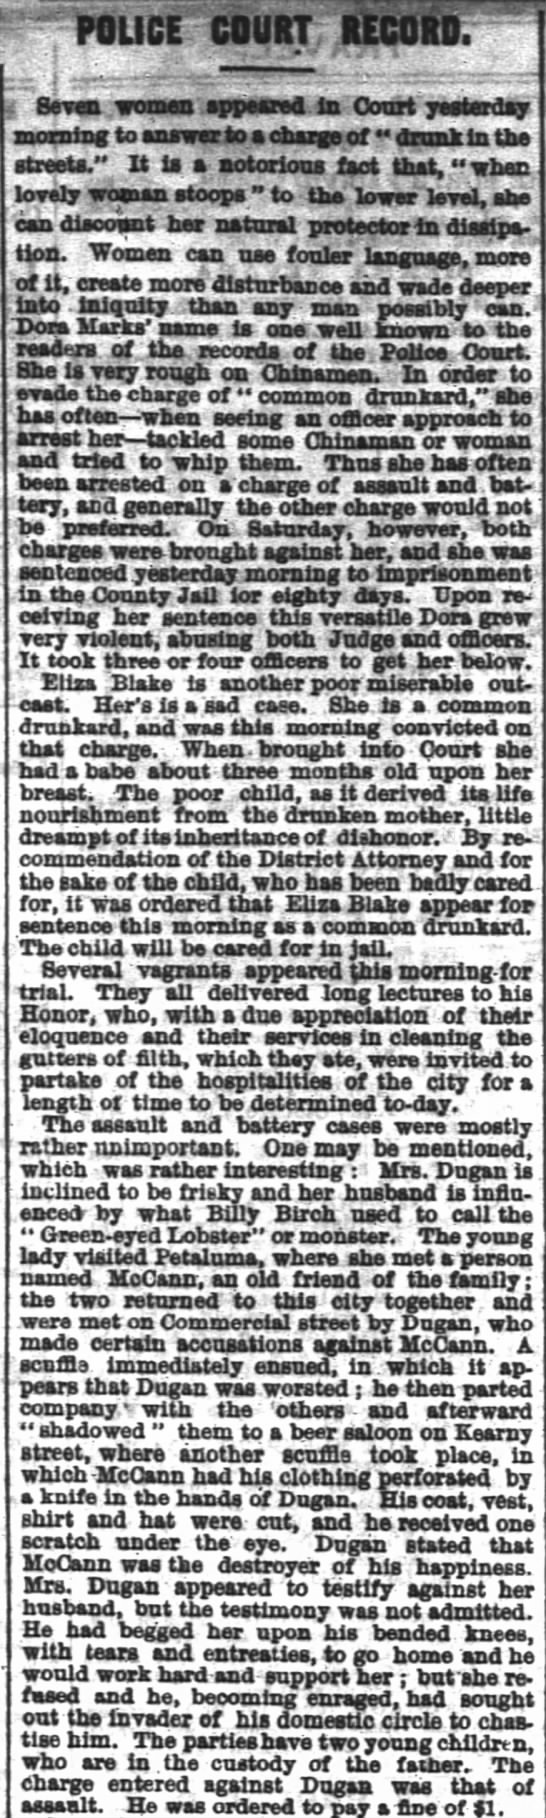 Description of Drunk Women - October 5, 1869 - SF Chronicle -